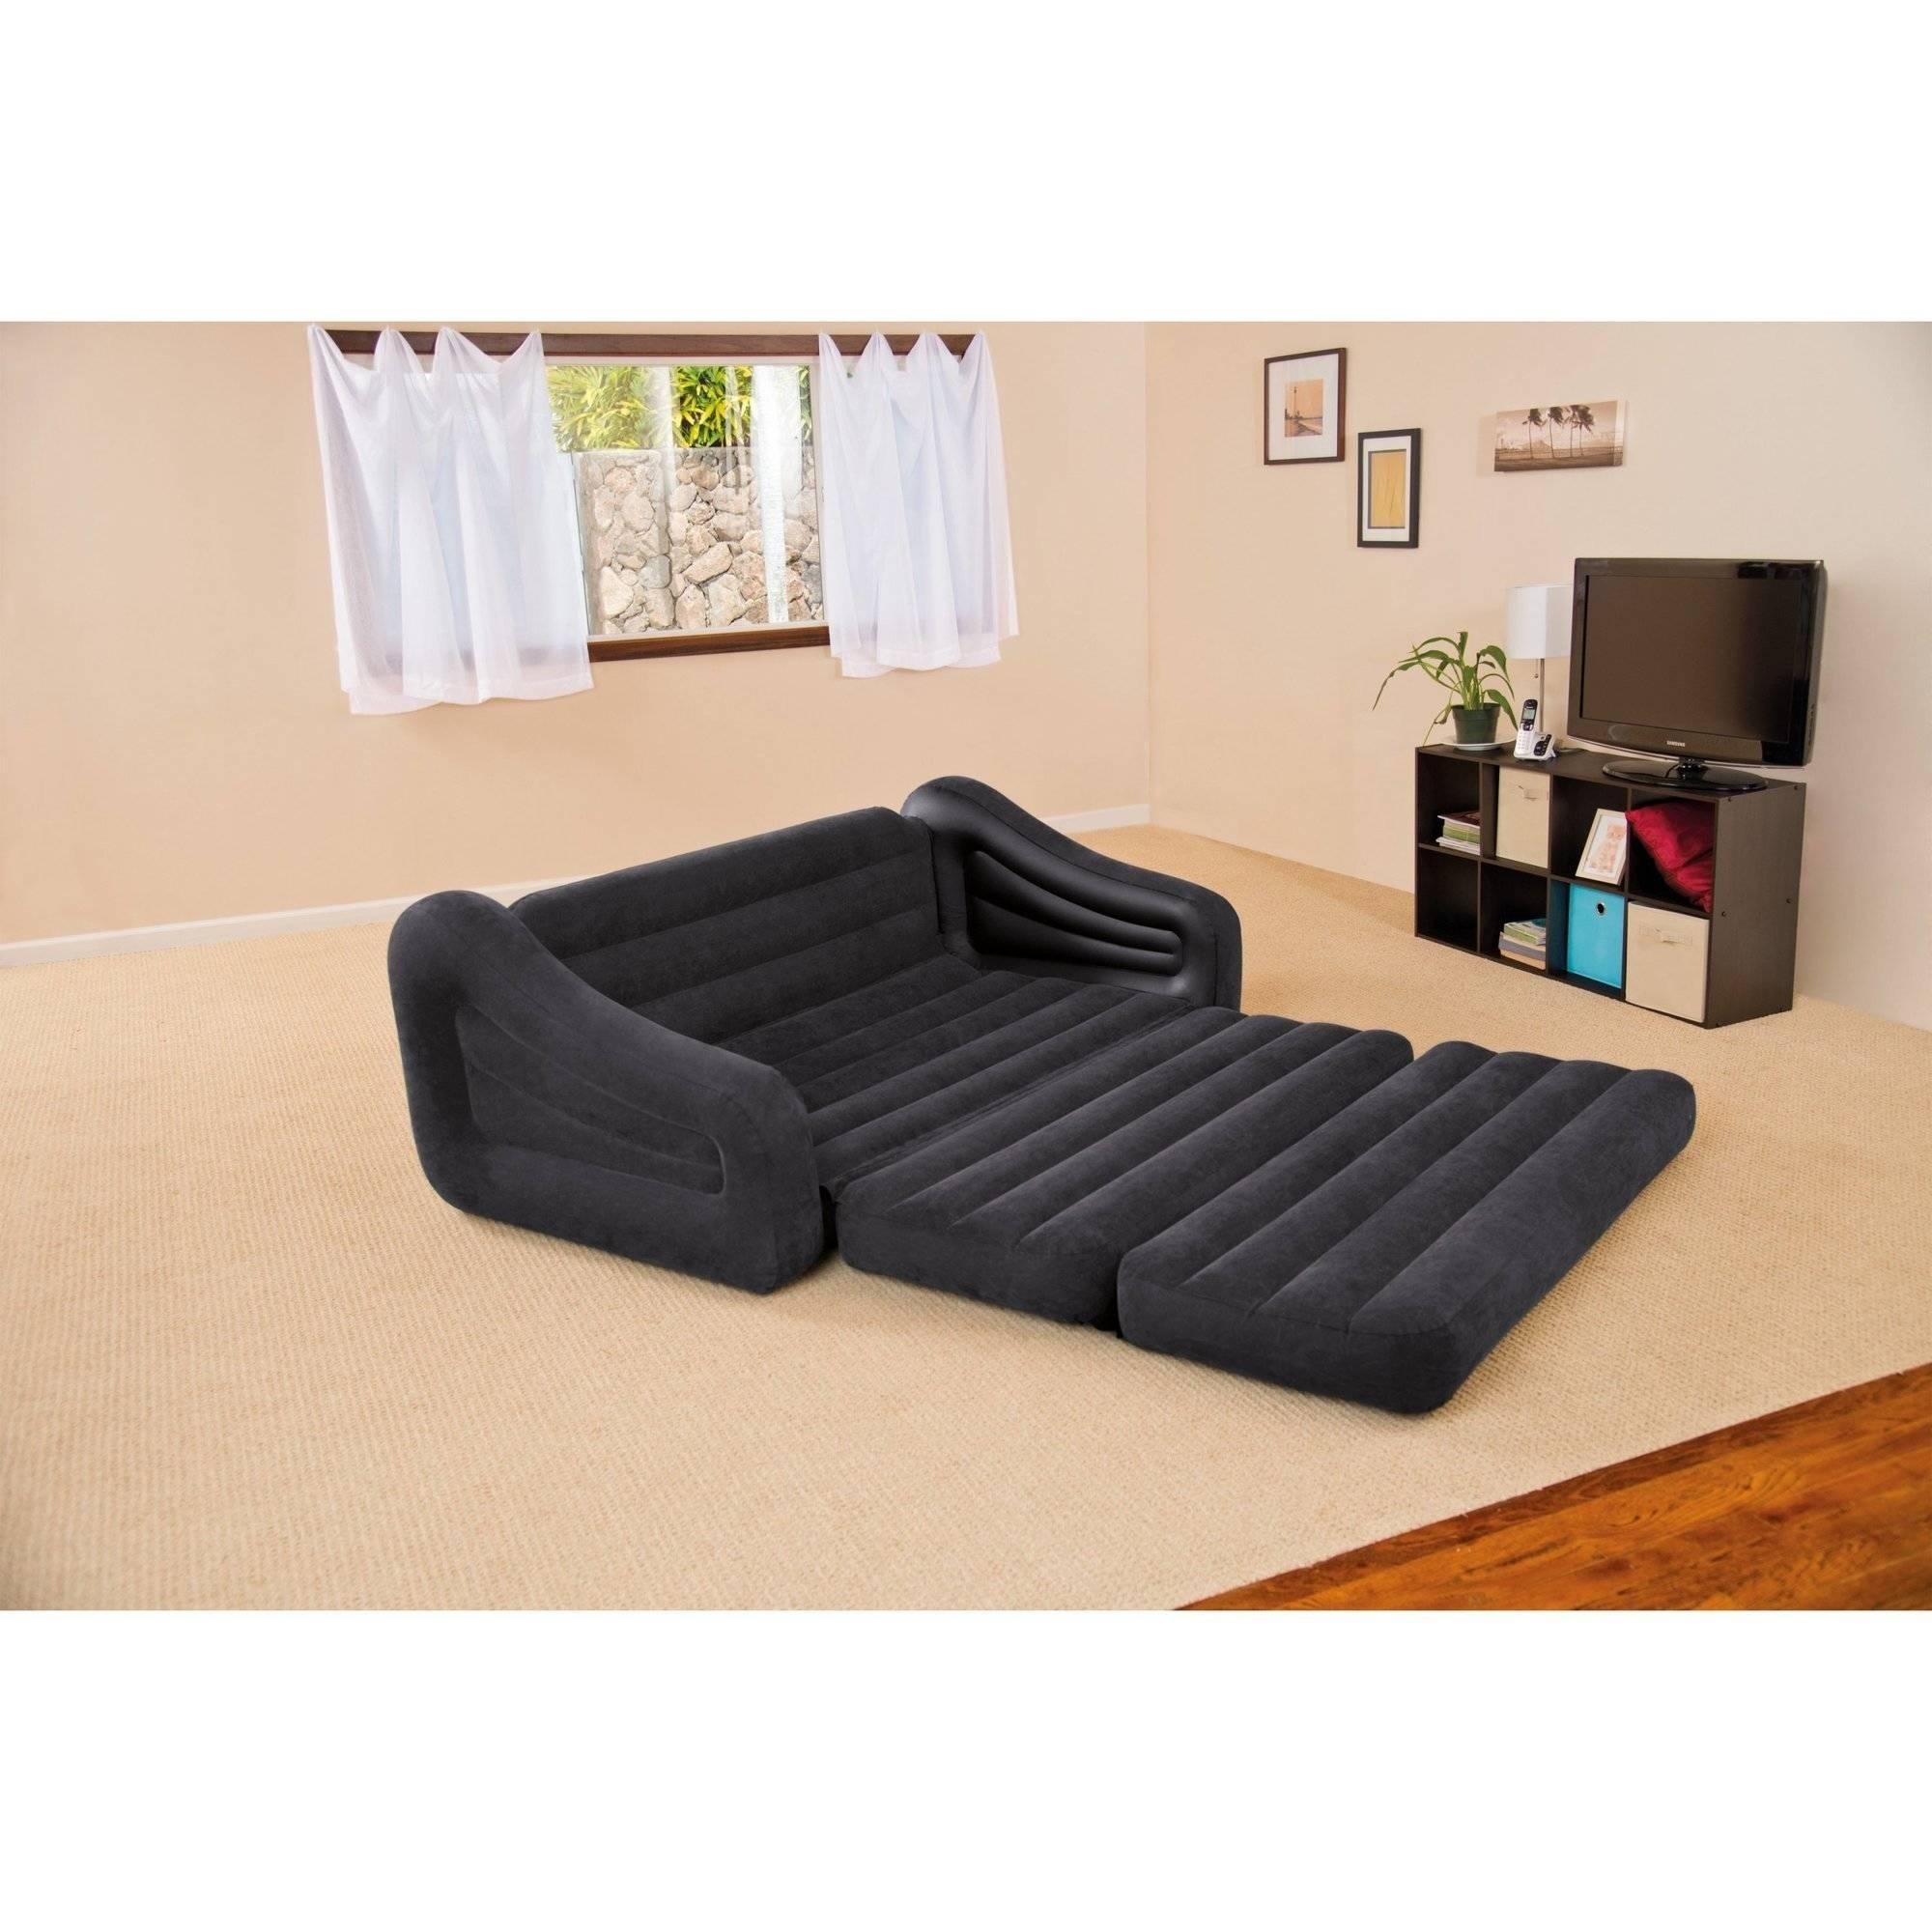 Intex Queen Inflatable Pull Out Sofa Bed – Walmart For Intex Queen Sleeper Sofas (Image 16 of 20)